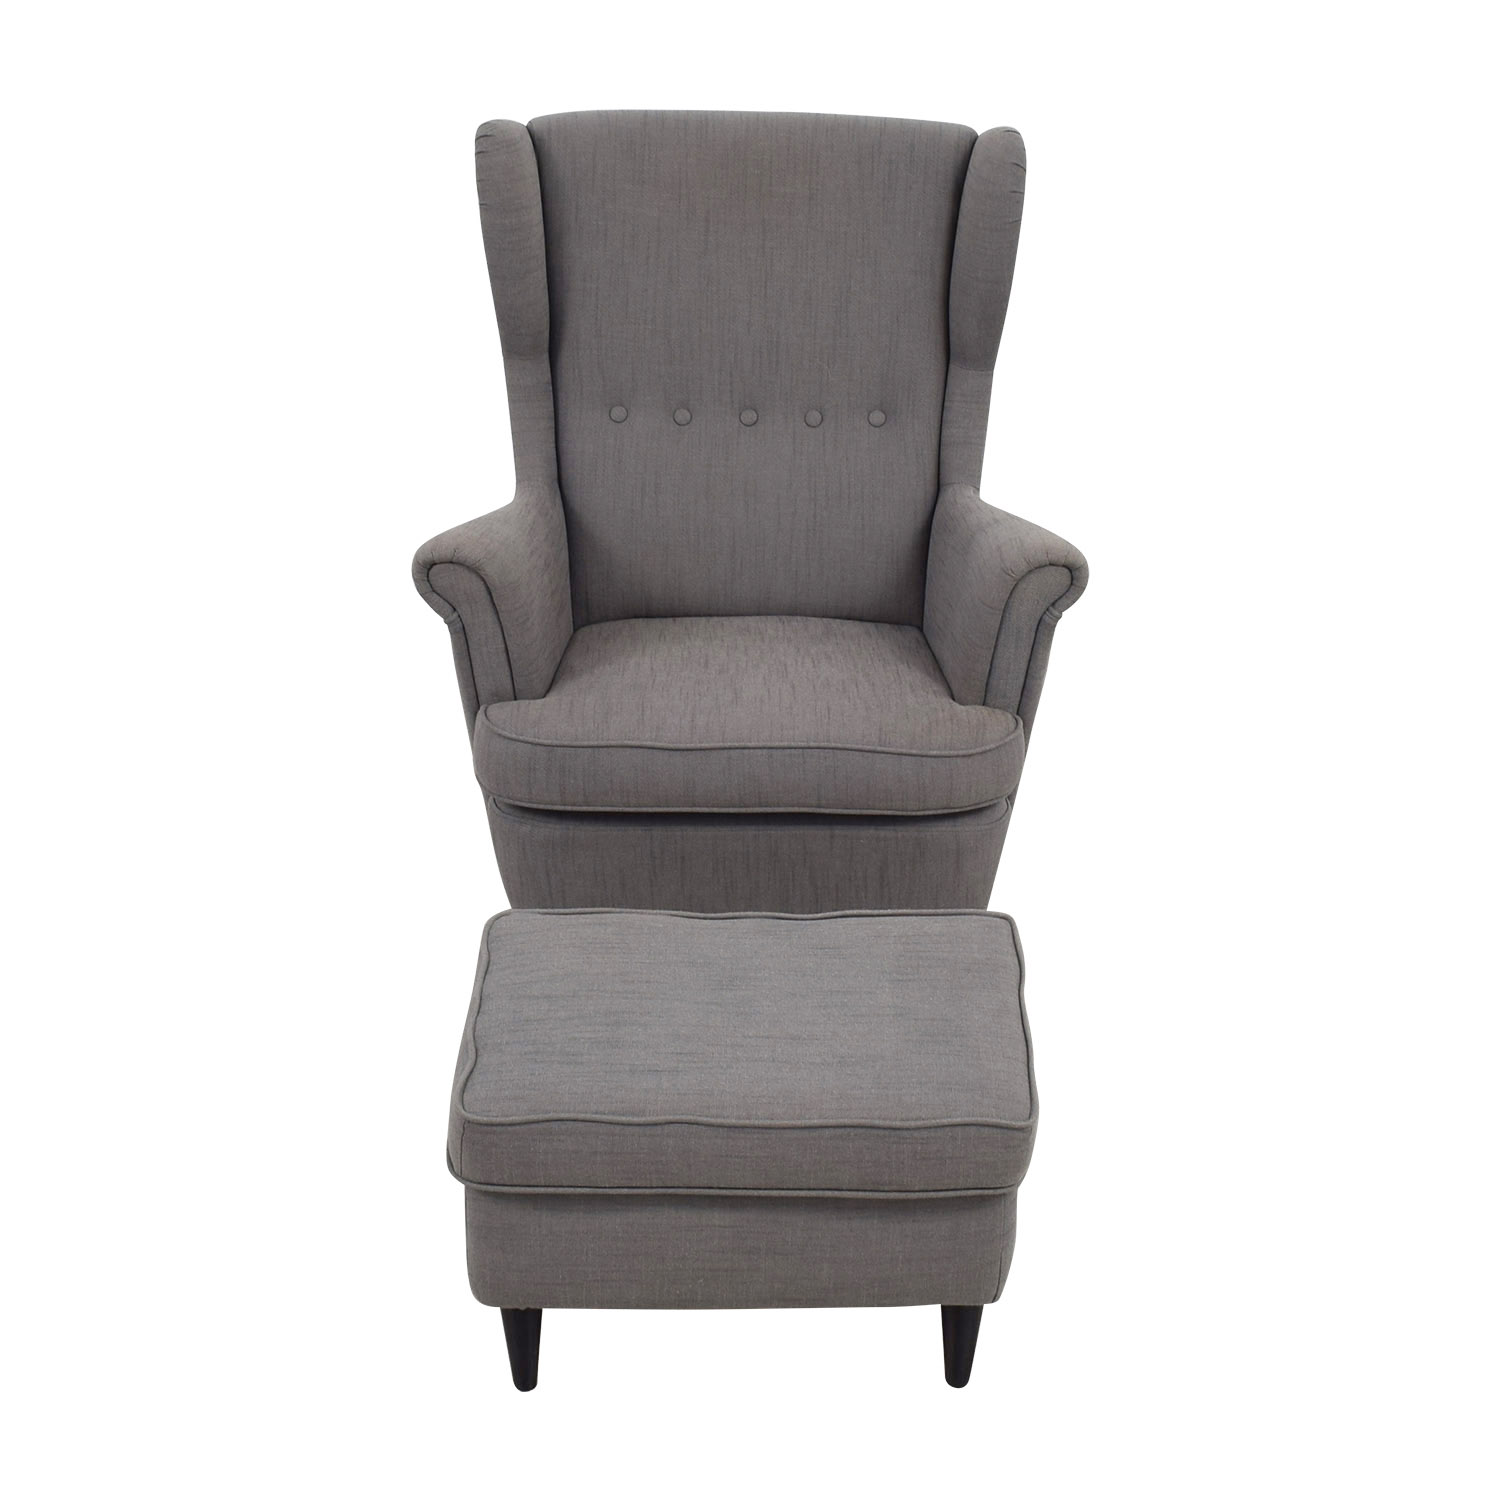 62 Off Ikea Ikea Grey Wing Chair And Ottoman Chairs